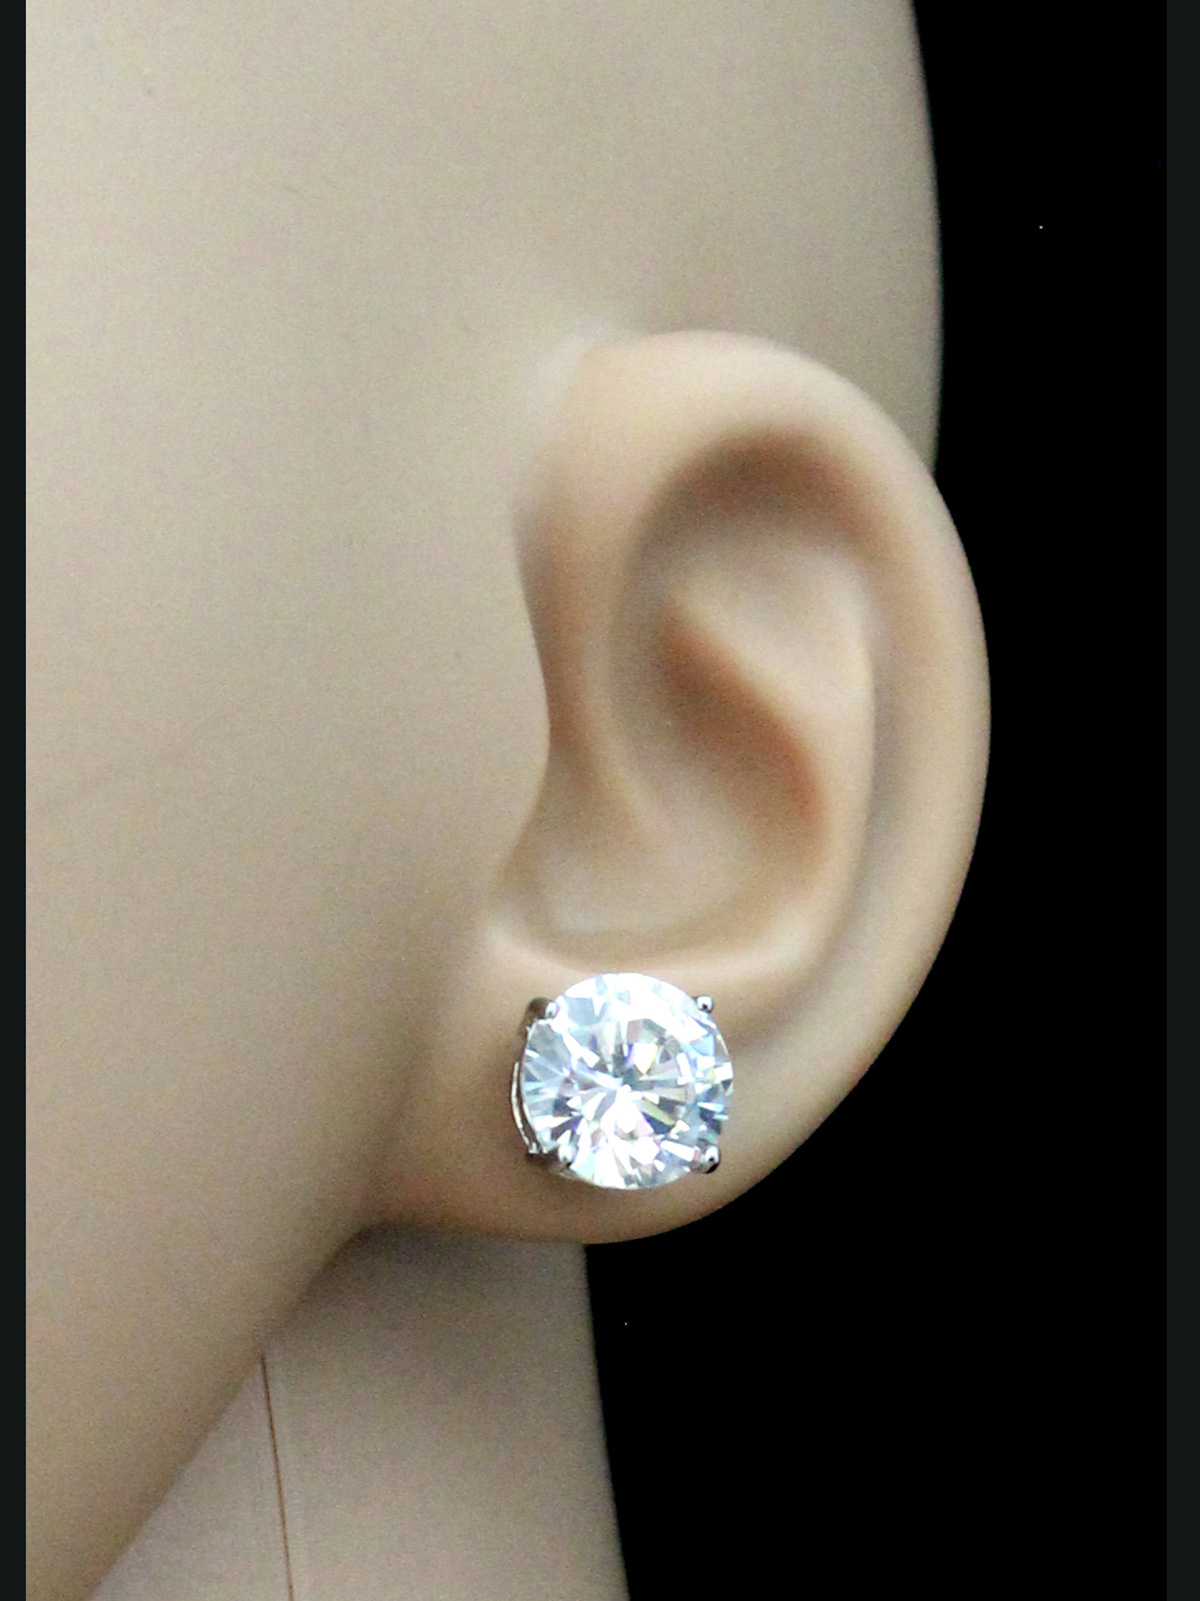 round johnlewis earrings pdp main buyibb at cubic ibb zirconia john stud gold com lewis rsp online